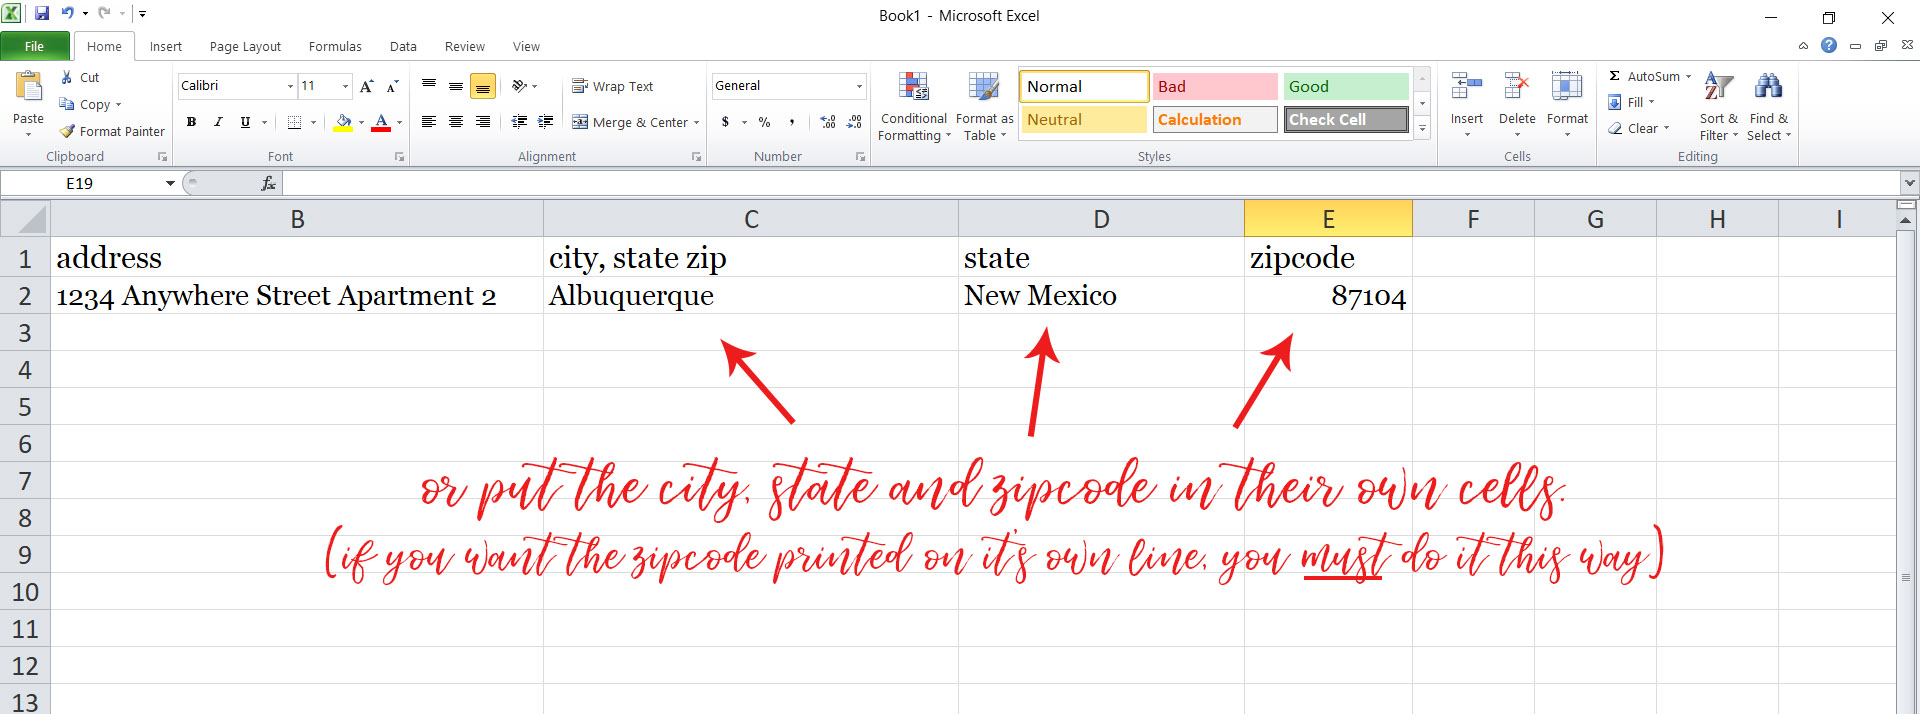 If you prefer, you can place the city in Cell C, State in Cell D, and Zip code in Cell E. If you like the style of addressing where the zip code is on its own line, you must set up your file this way.